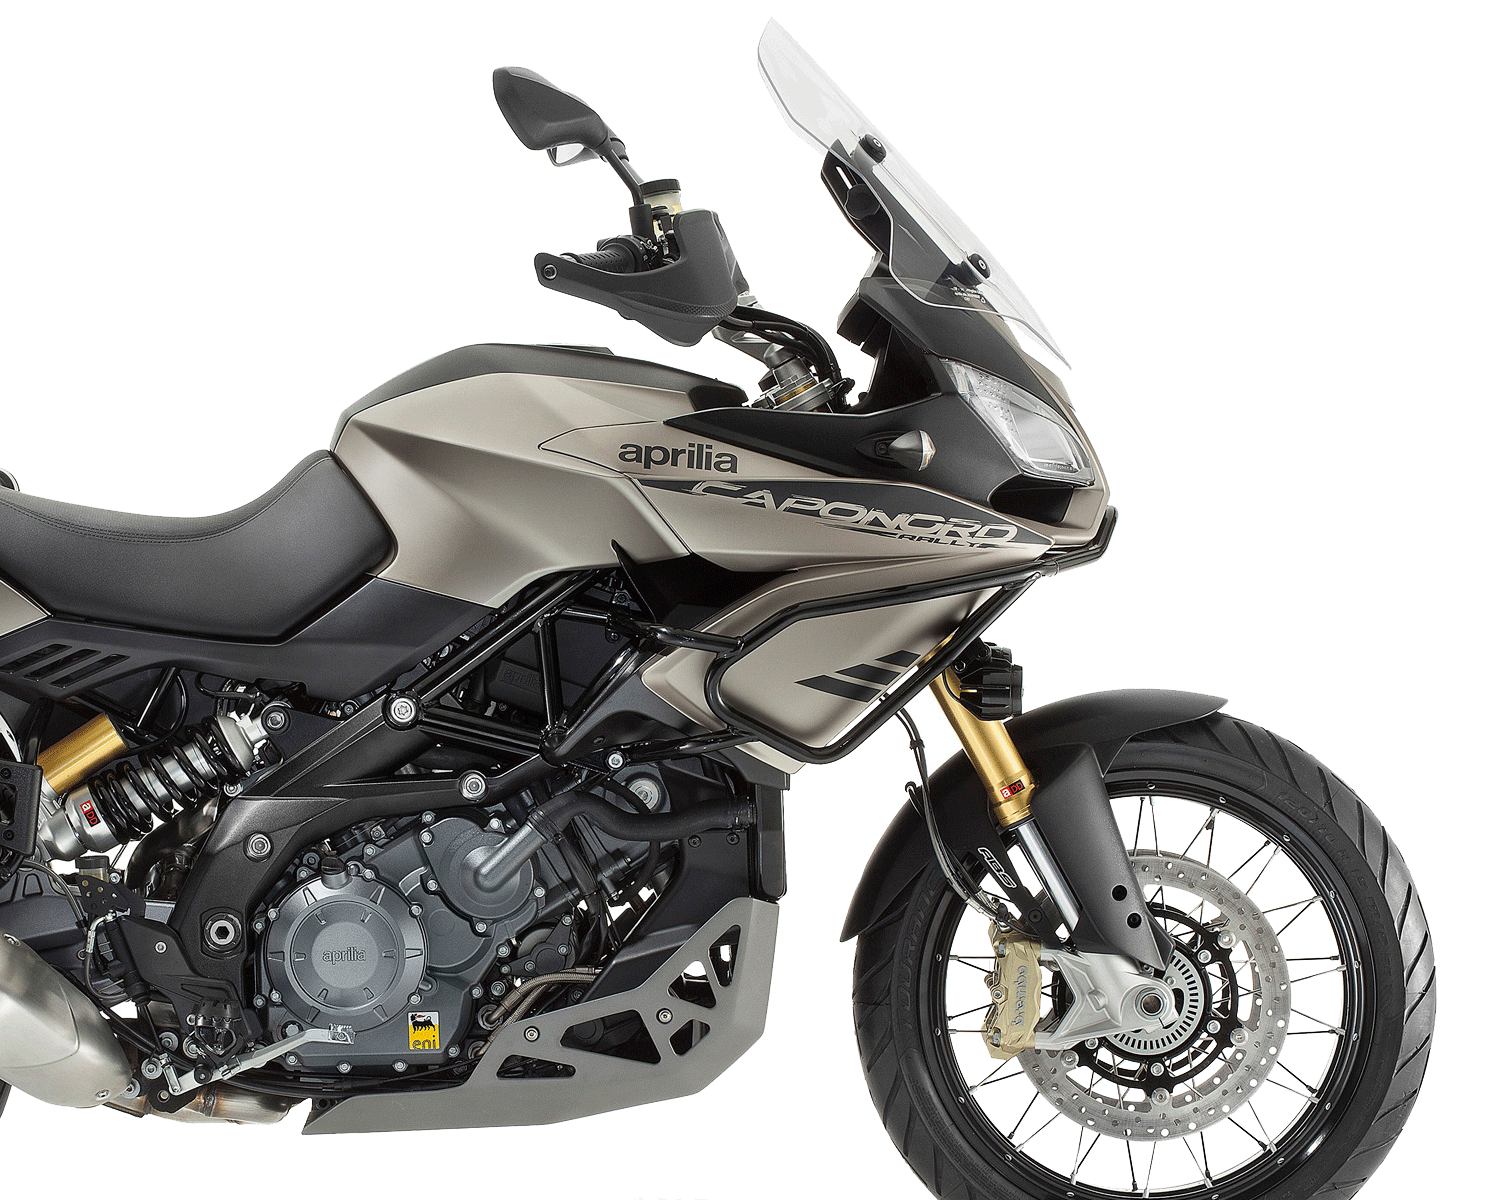 2018 Aprilia Caponord 1200 Rally Model Page